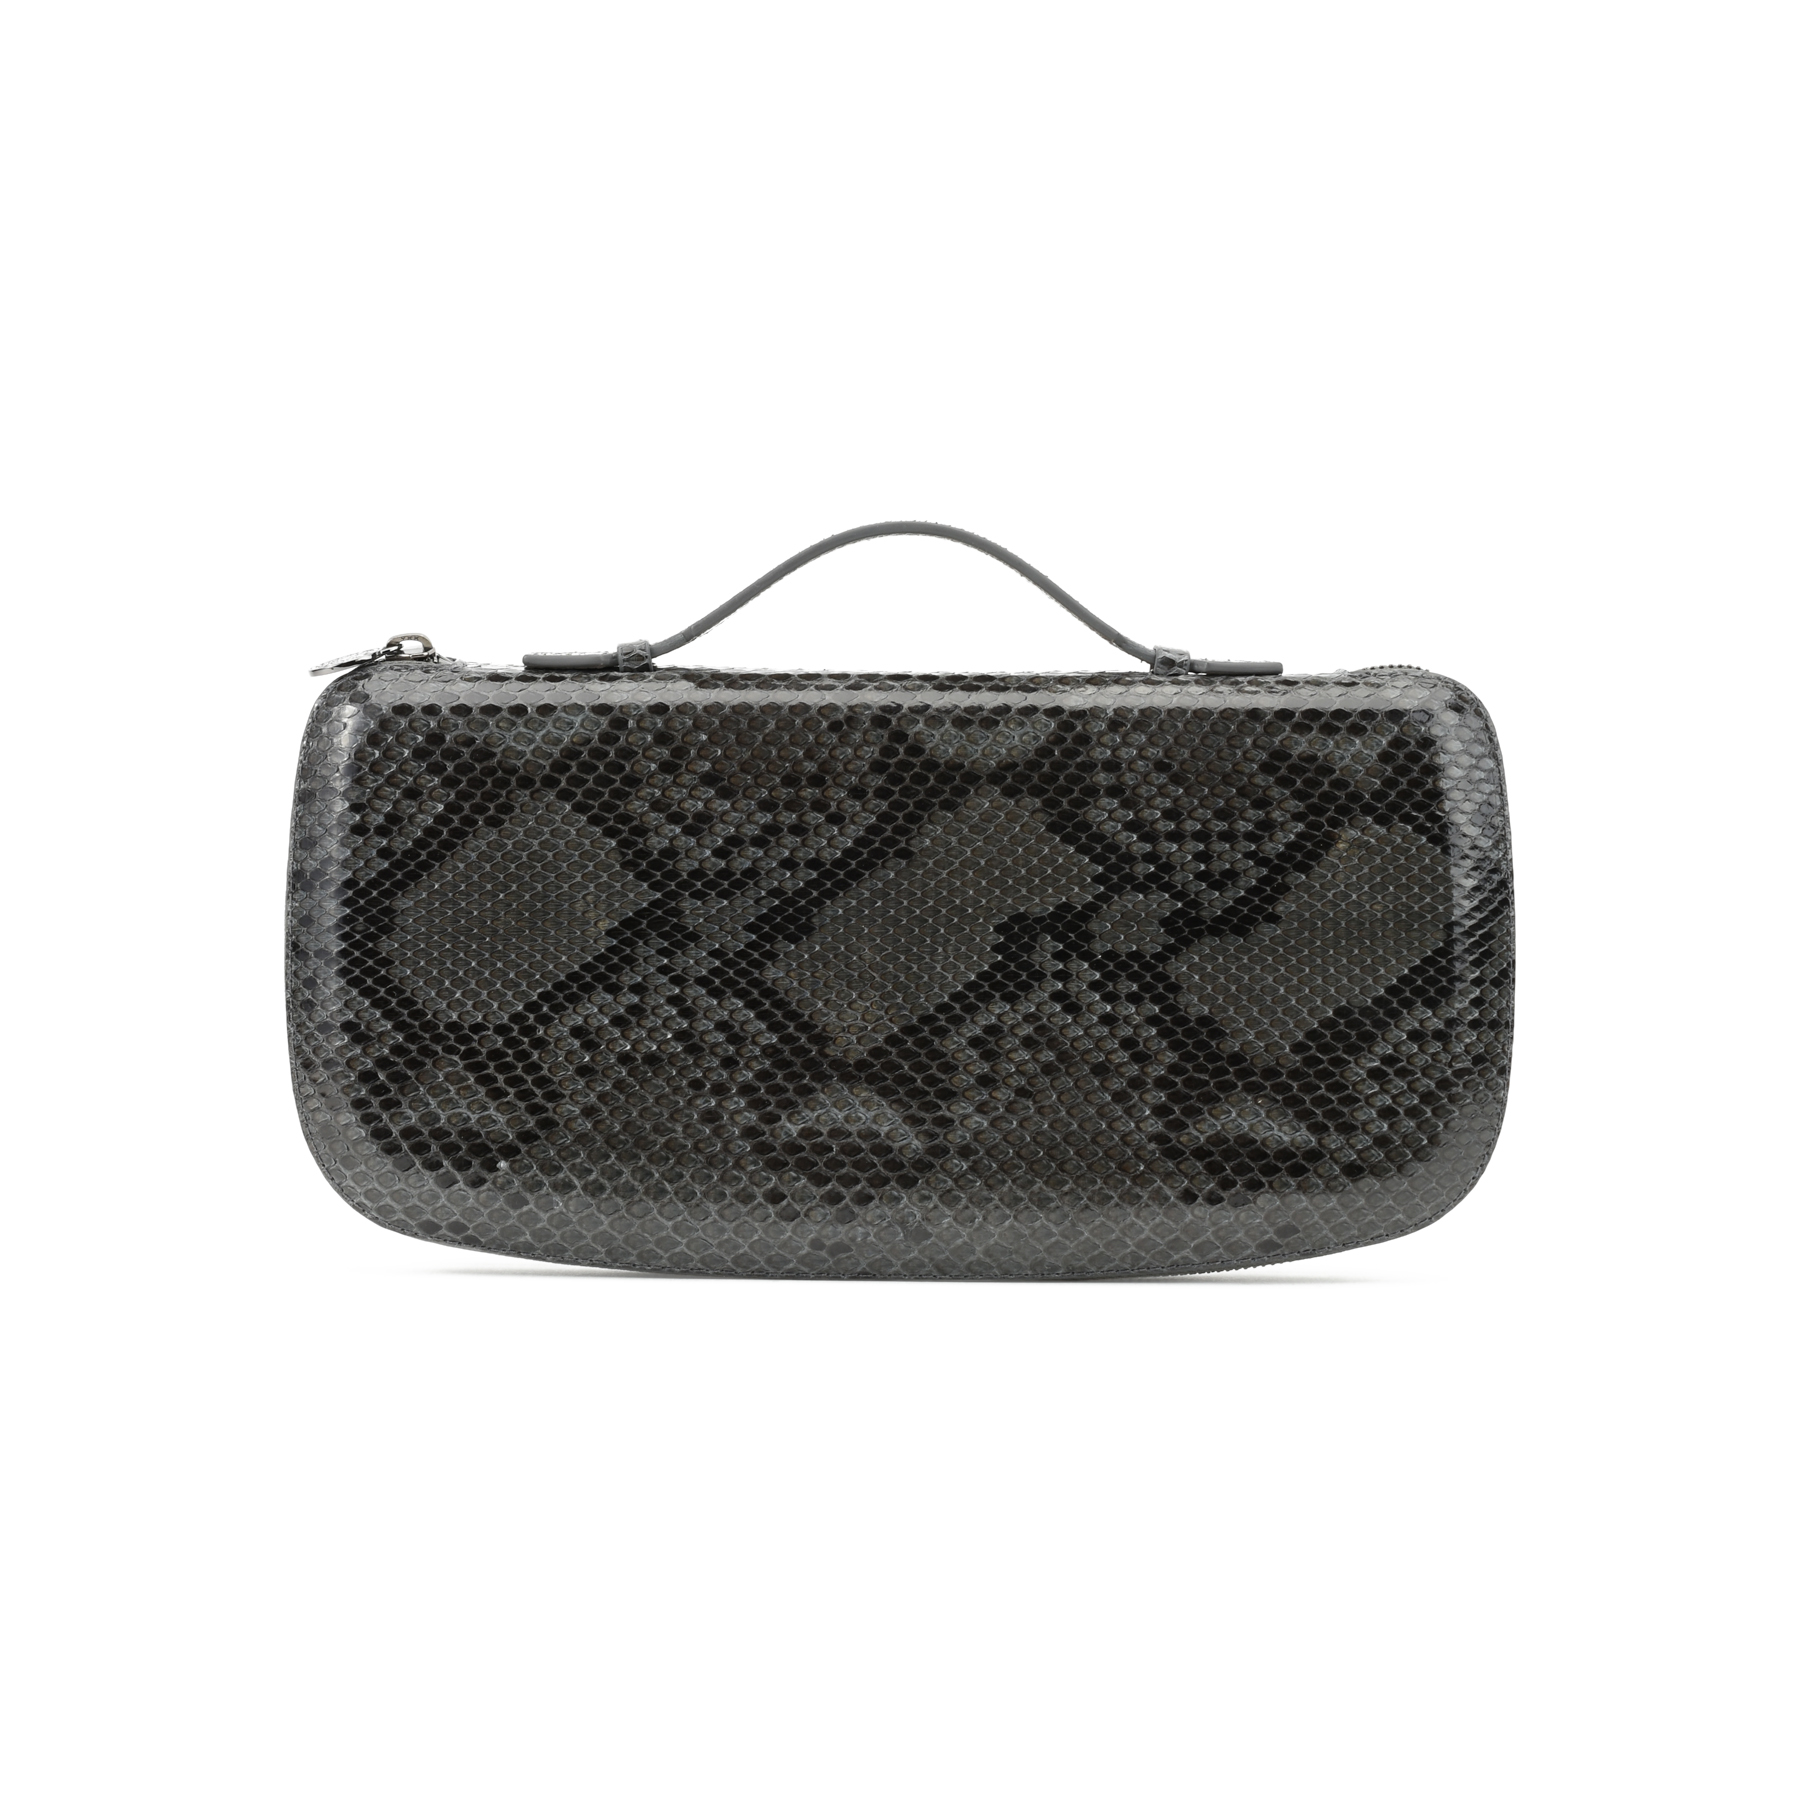 069c3637cd0 Authentic Second Hand Perrin Paris Jet Set Travel Clutch (PSS-145-00152) -  THE FIFTH COLLECTION